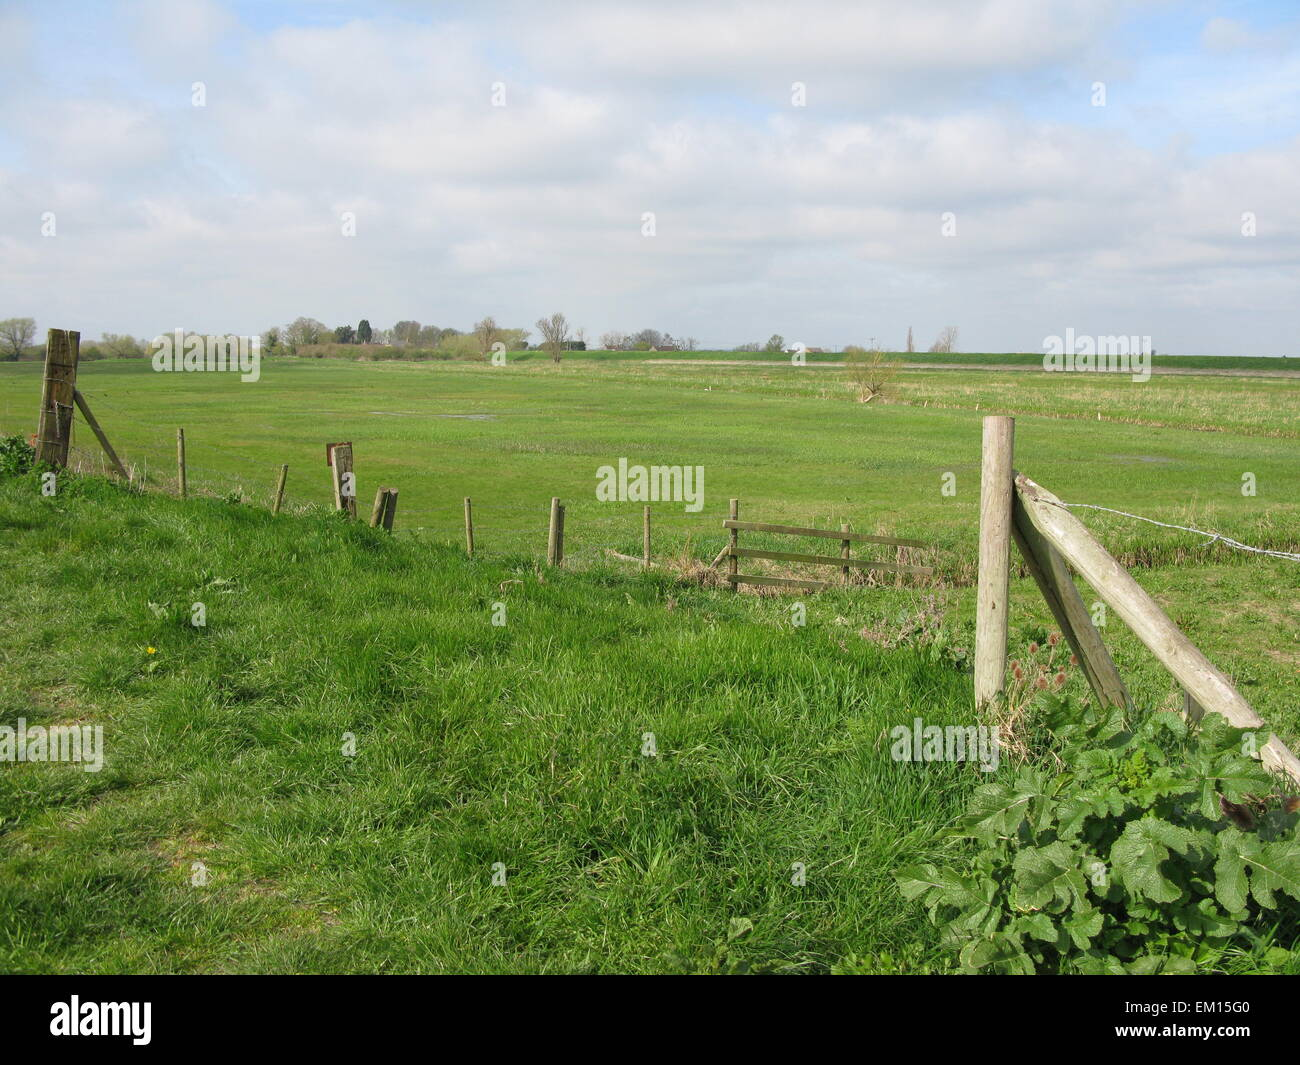 The Washes at Sutton Gault - Stock Image